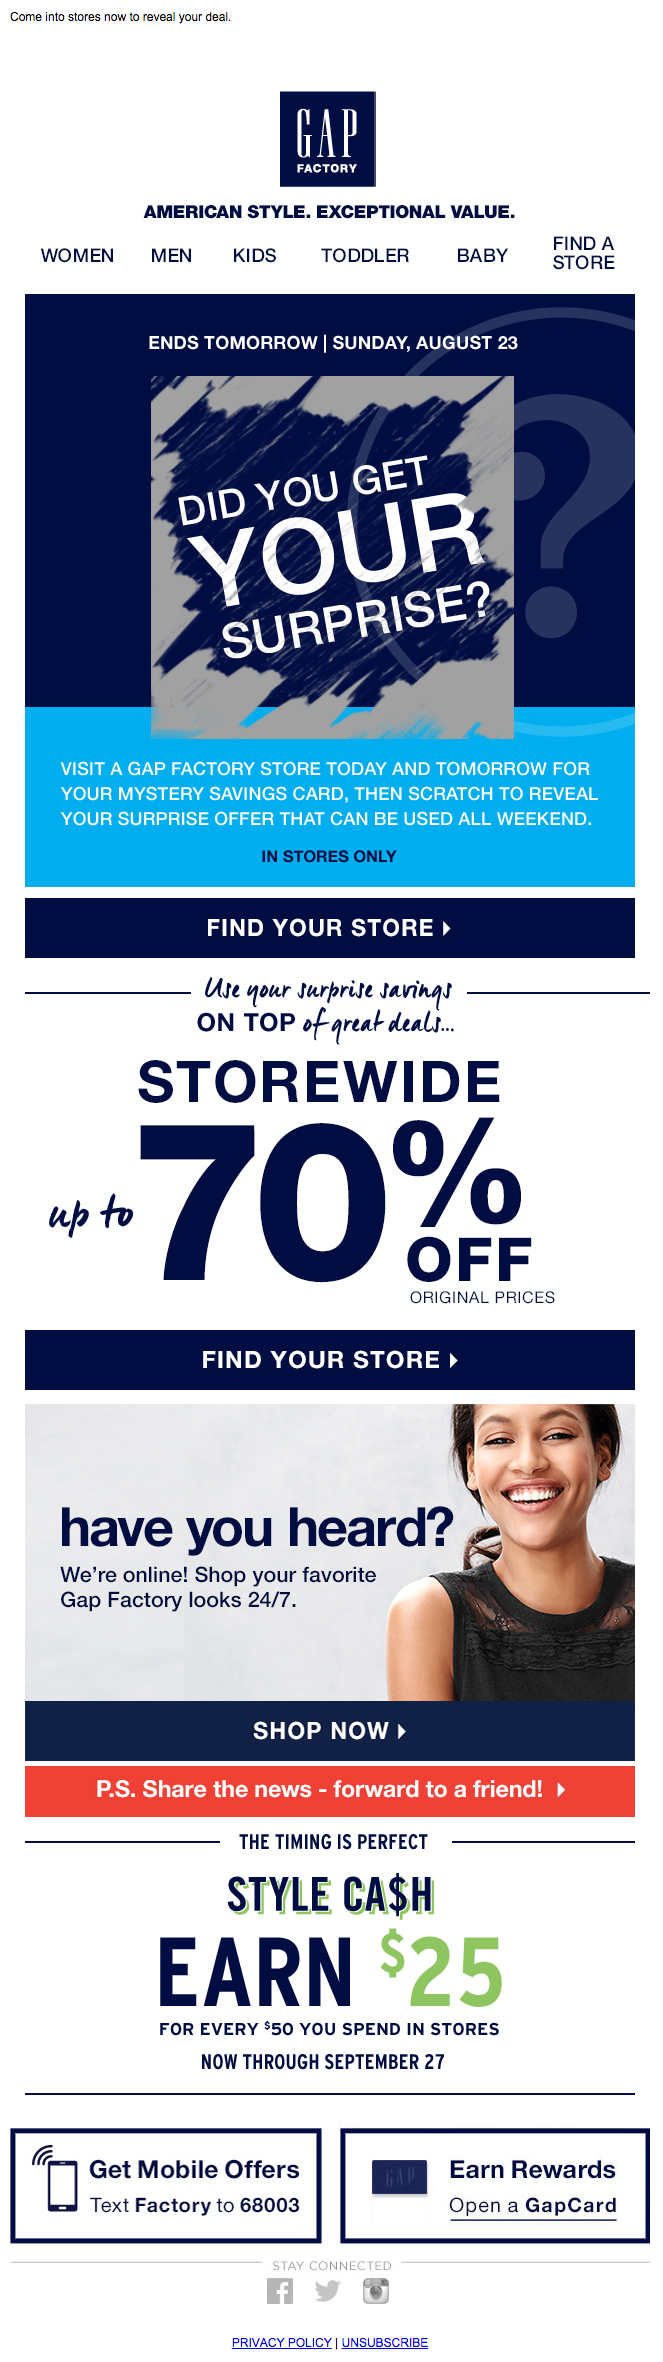 Gap mystery coupon email 2015